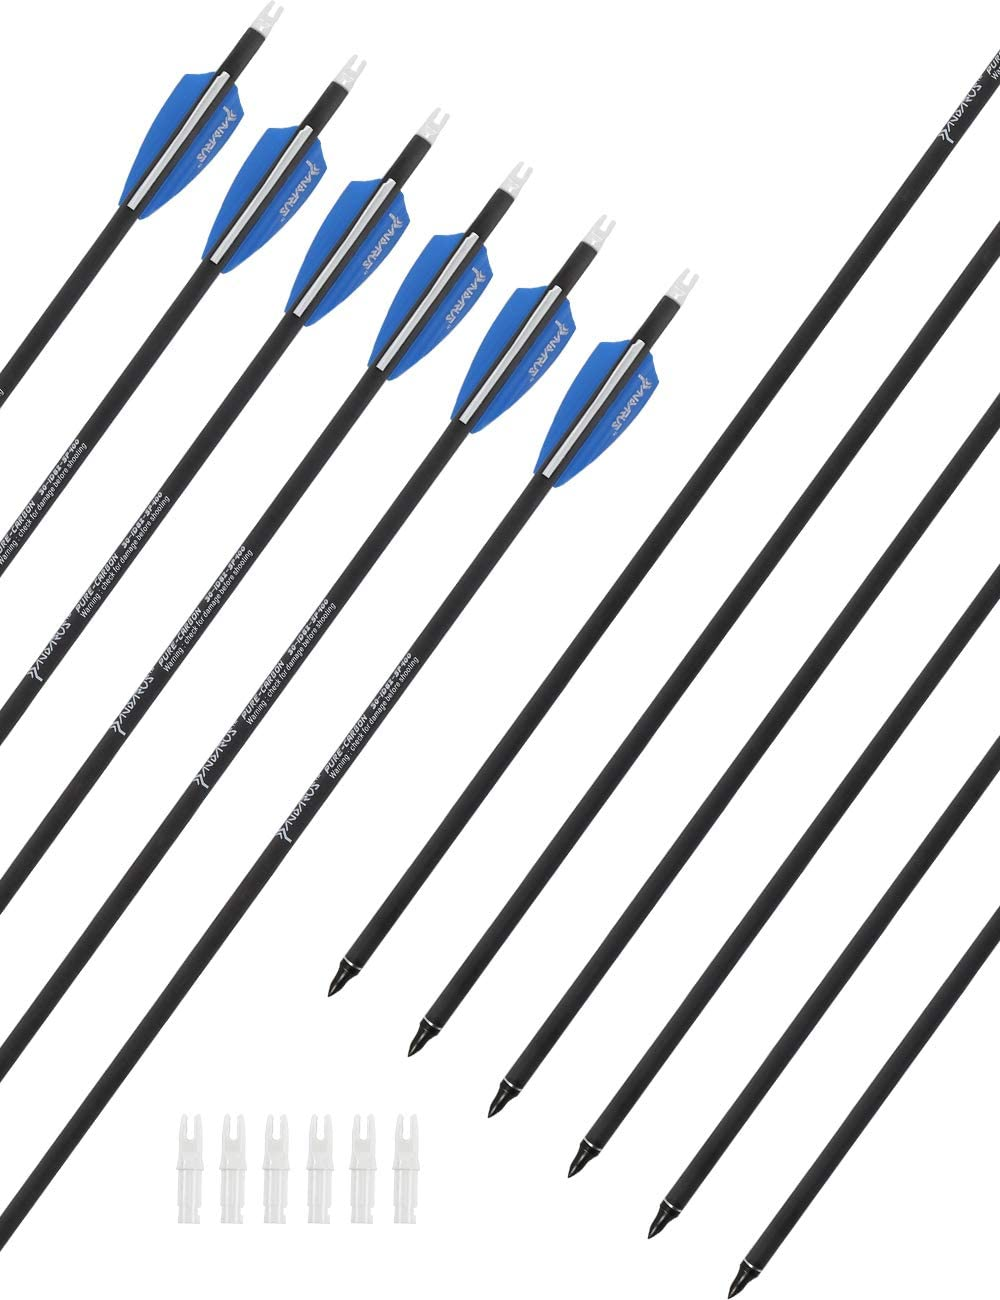 PANDARUS Great interest Pure Carbon Arrows 32 for 30 Hunting Inch Many popular brands